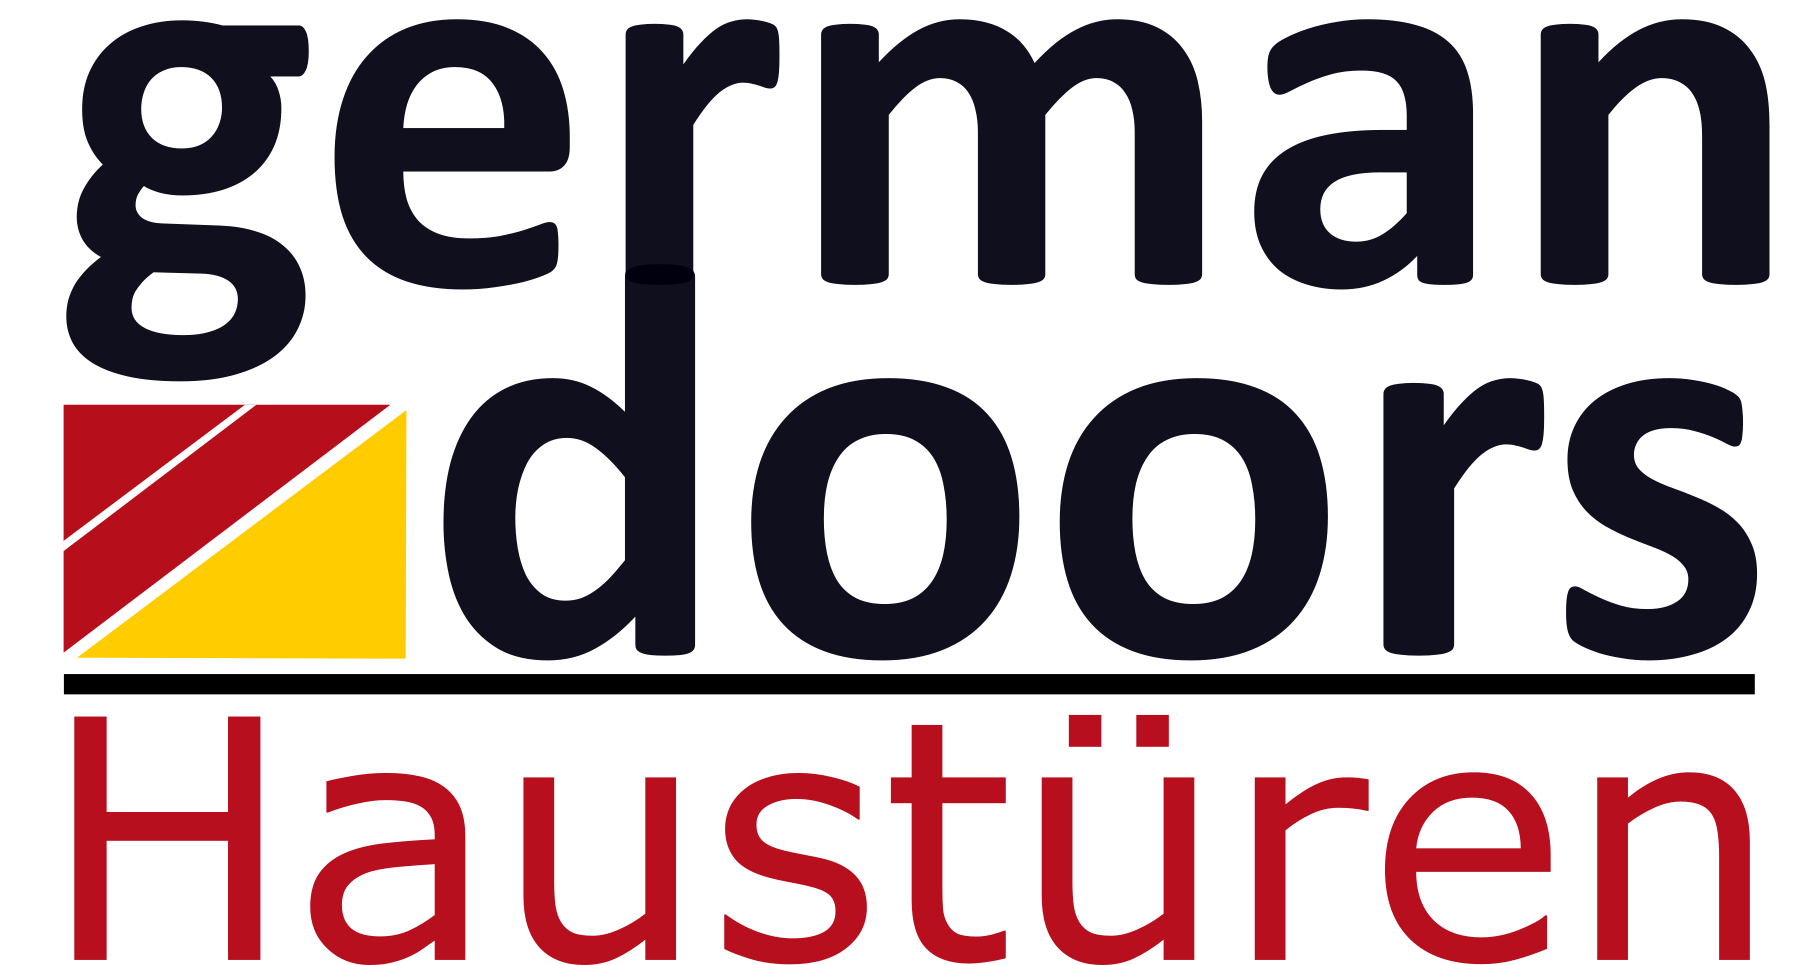 germandoors